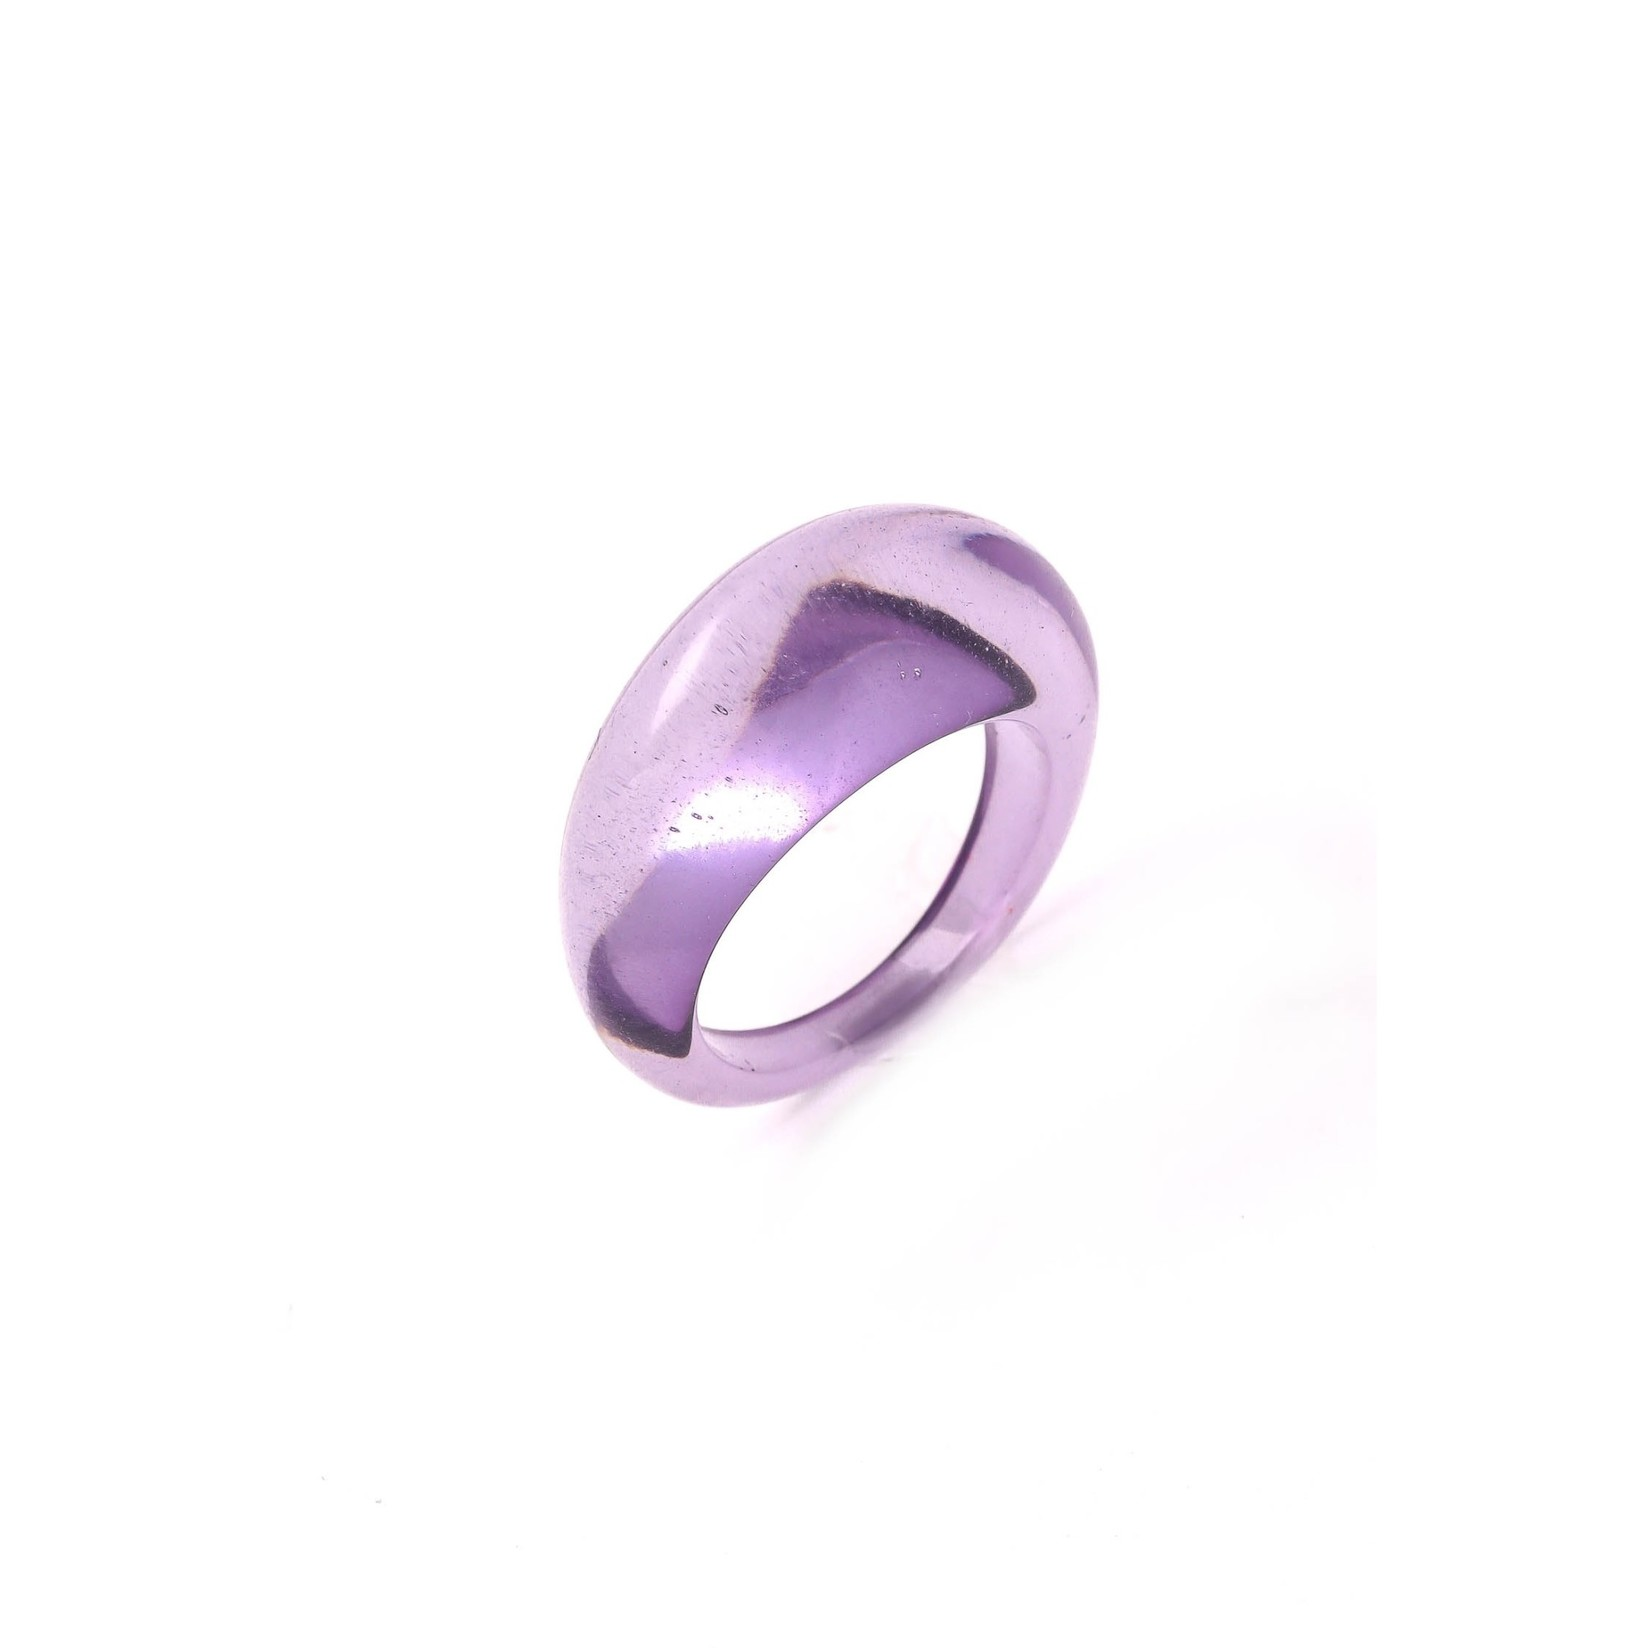 Anarchy Street Anarchy Street Round ThIck Resin Ring Purple